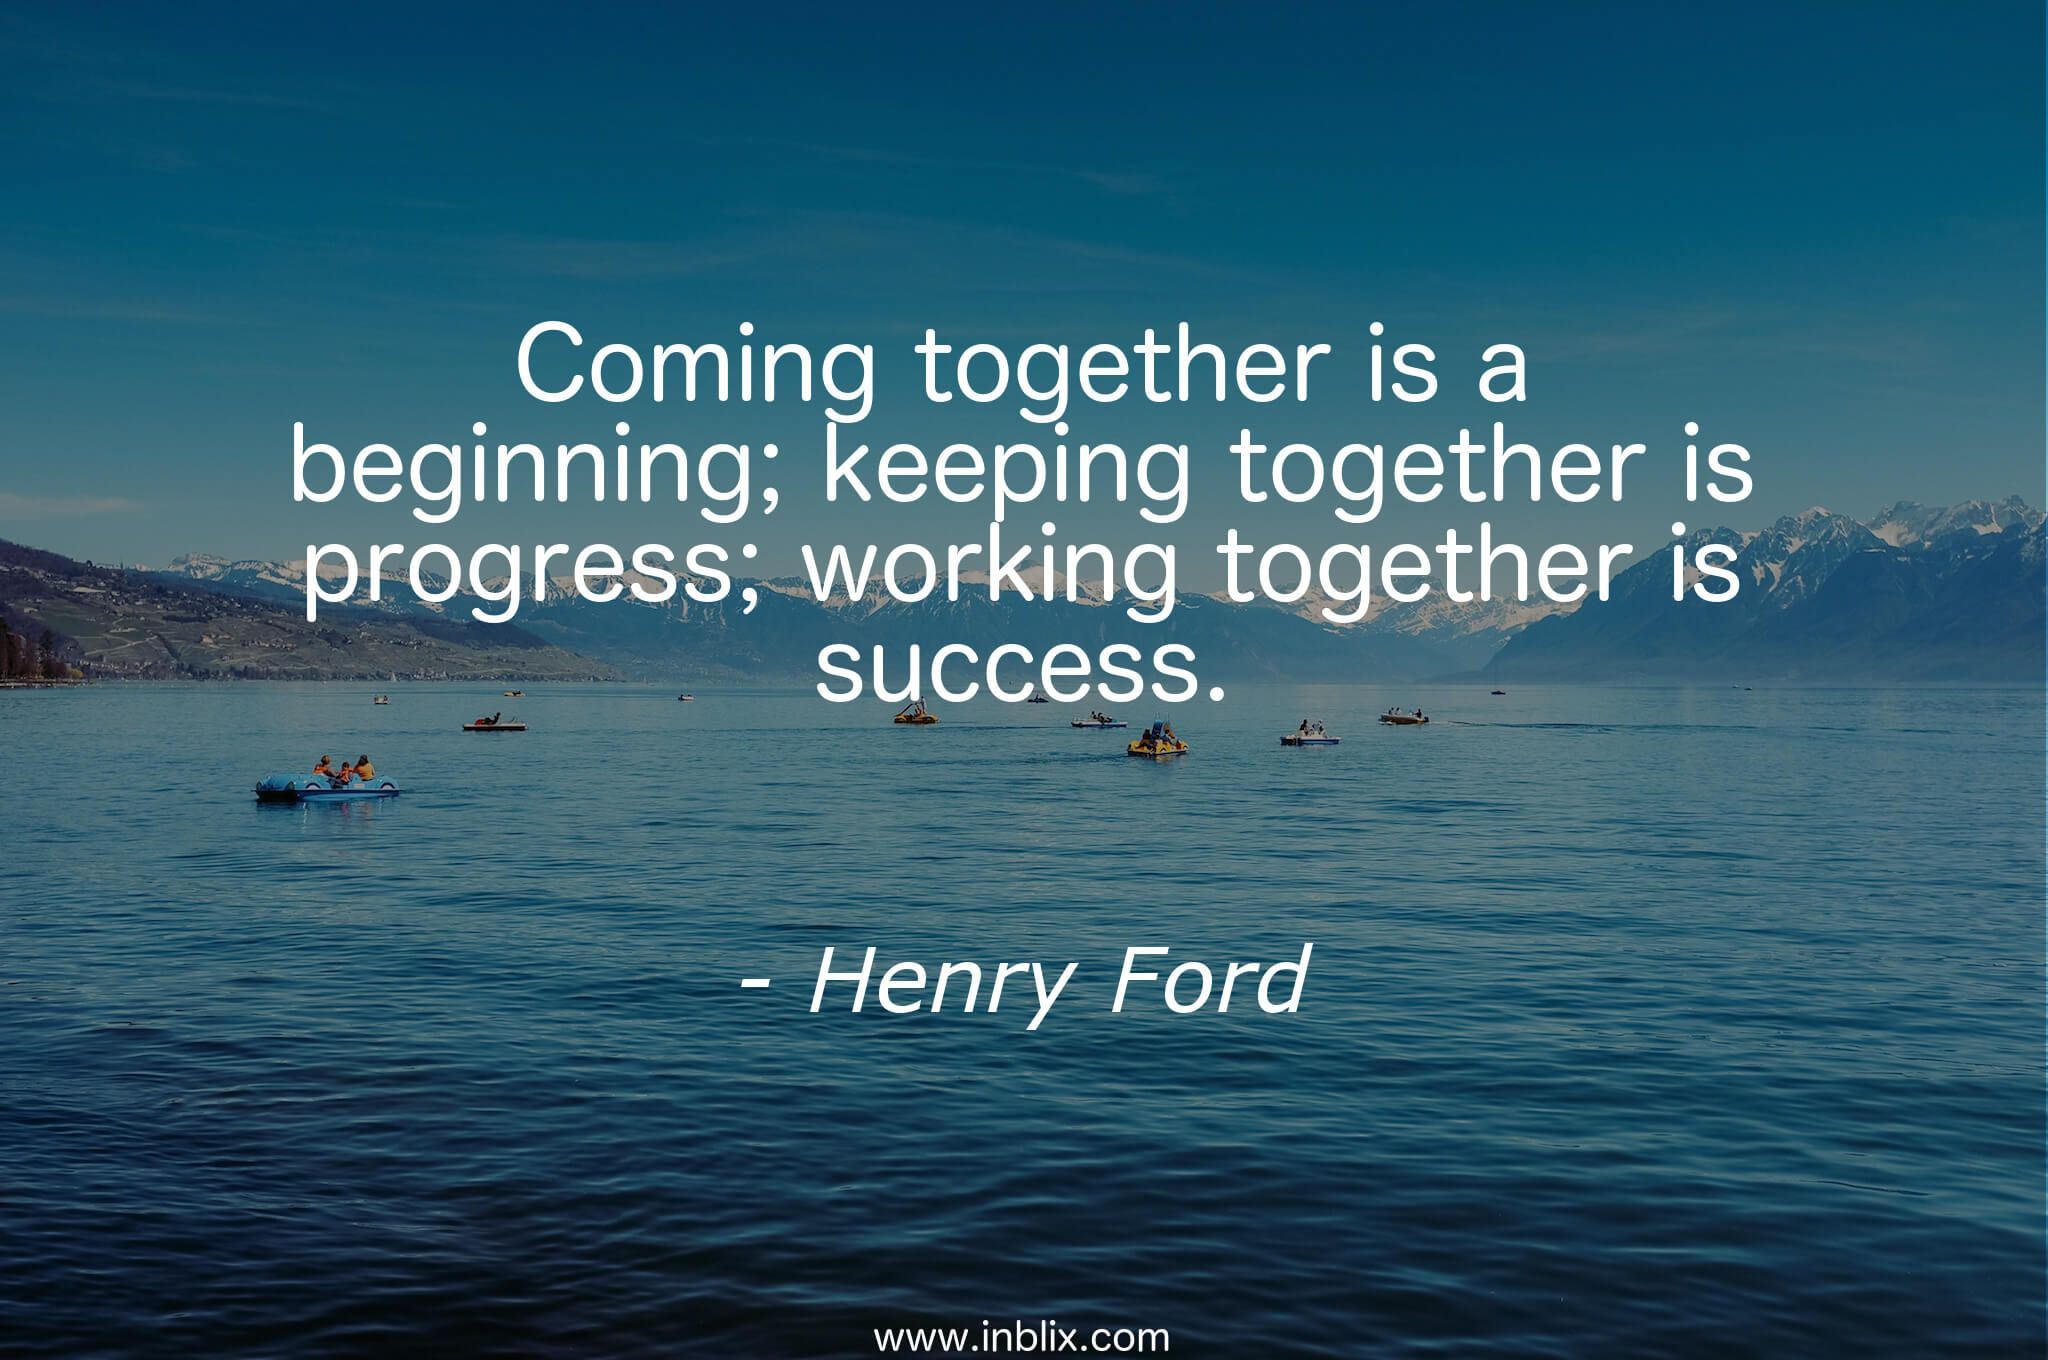 Working Together Is Success Leadership Teamwork Relationships Leadership Quotes Inspirational Quotes Life Purpose